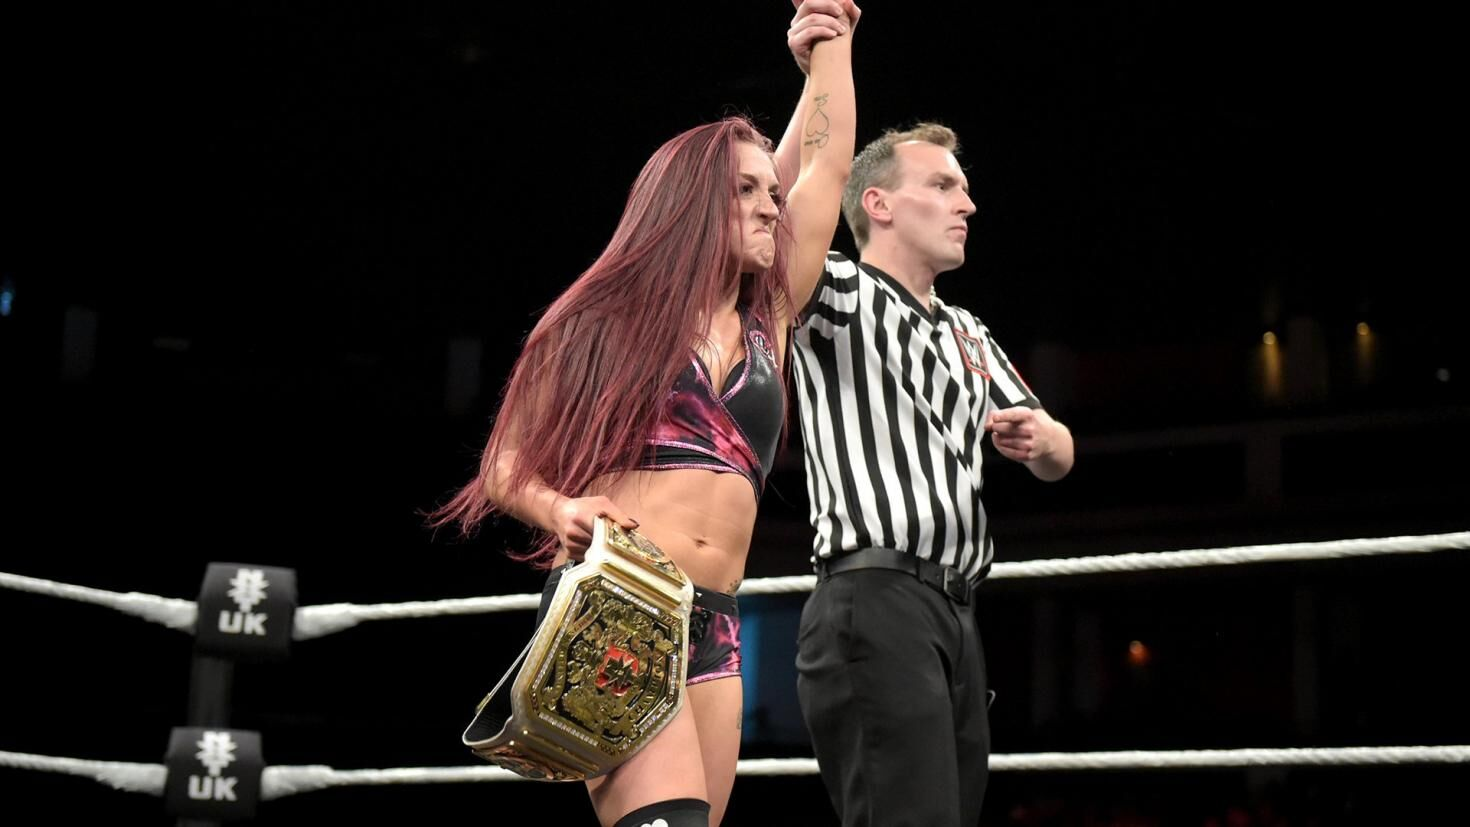 WWE Hall of Famer and NXT champion to be in Women's Royal Rumble?